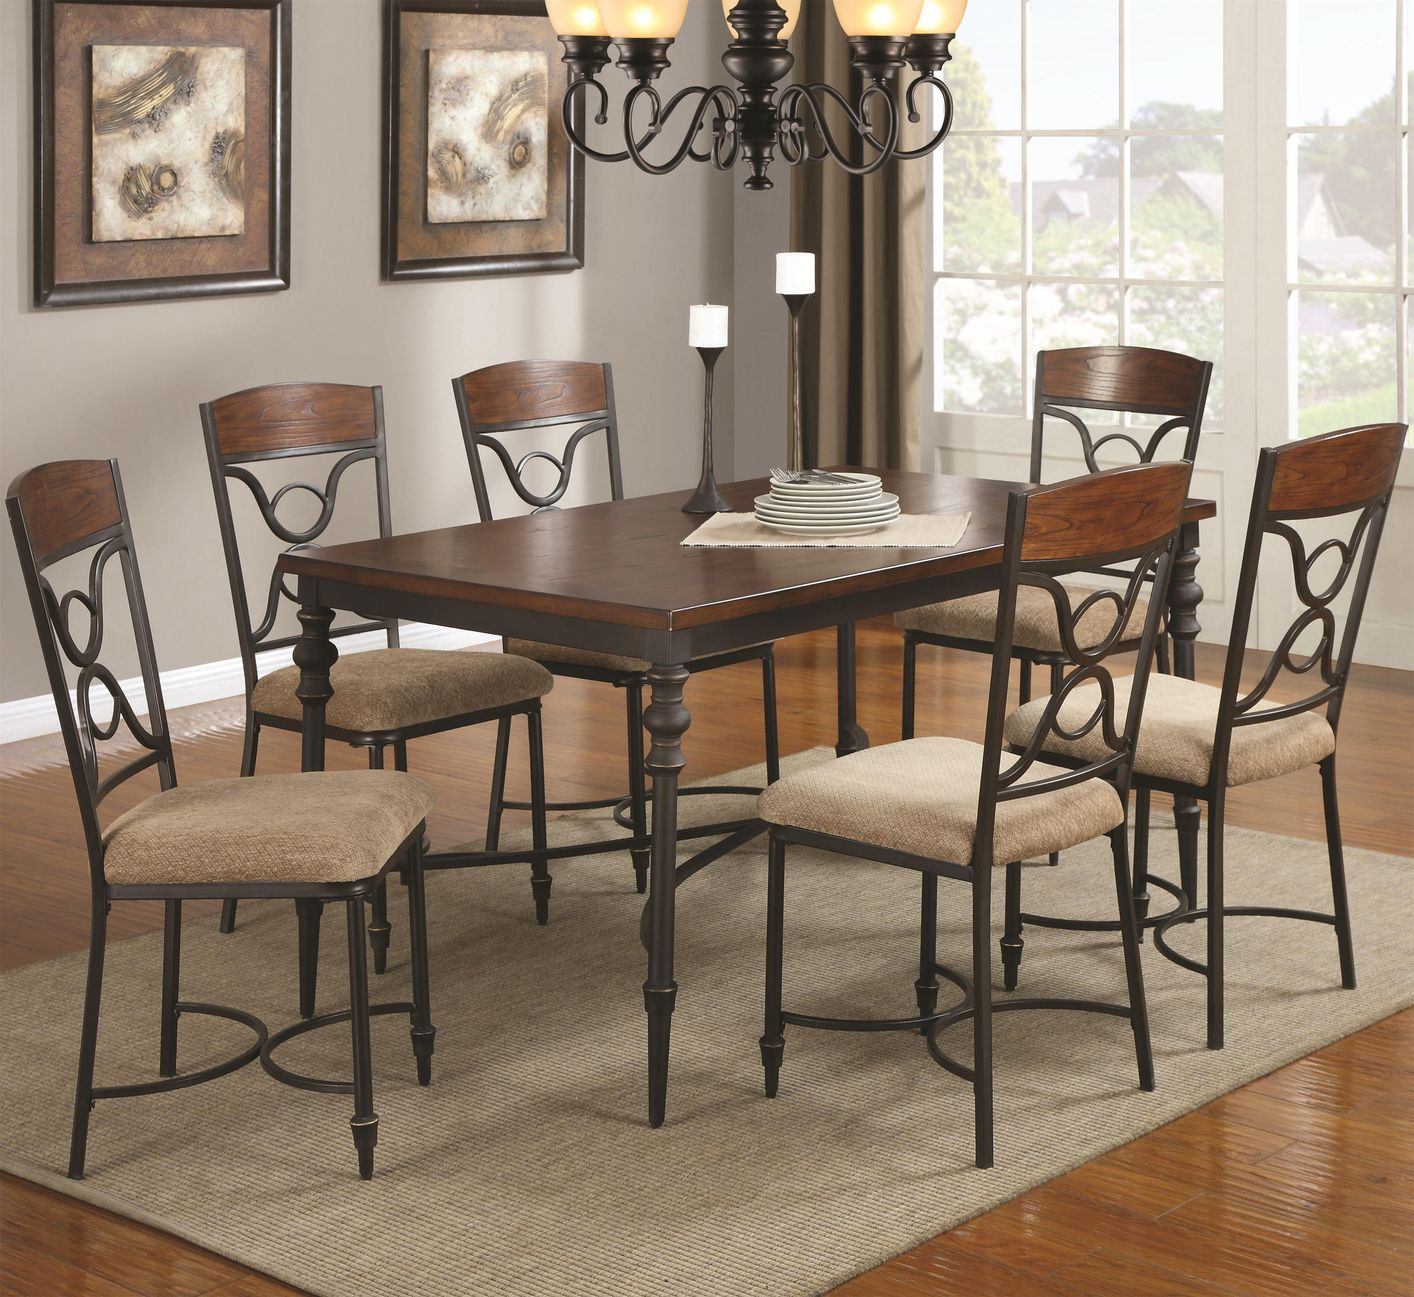 120851 120852 Brown Metal And Wood Dining Table Set In Los Angeles Ca